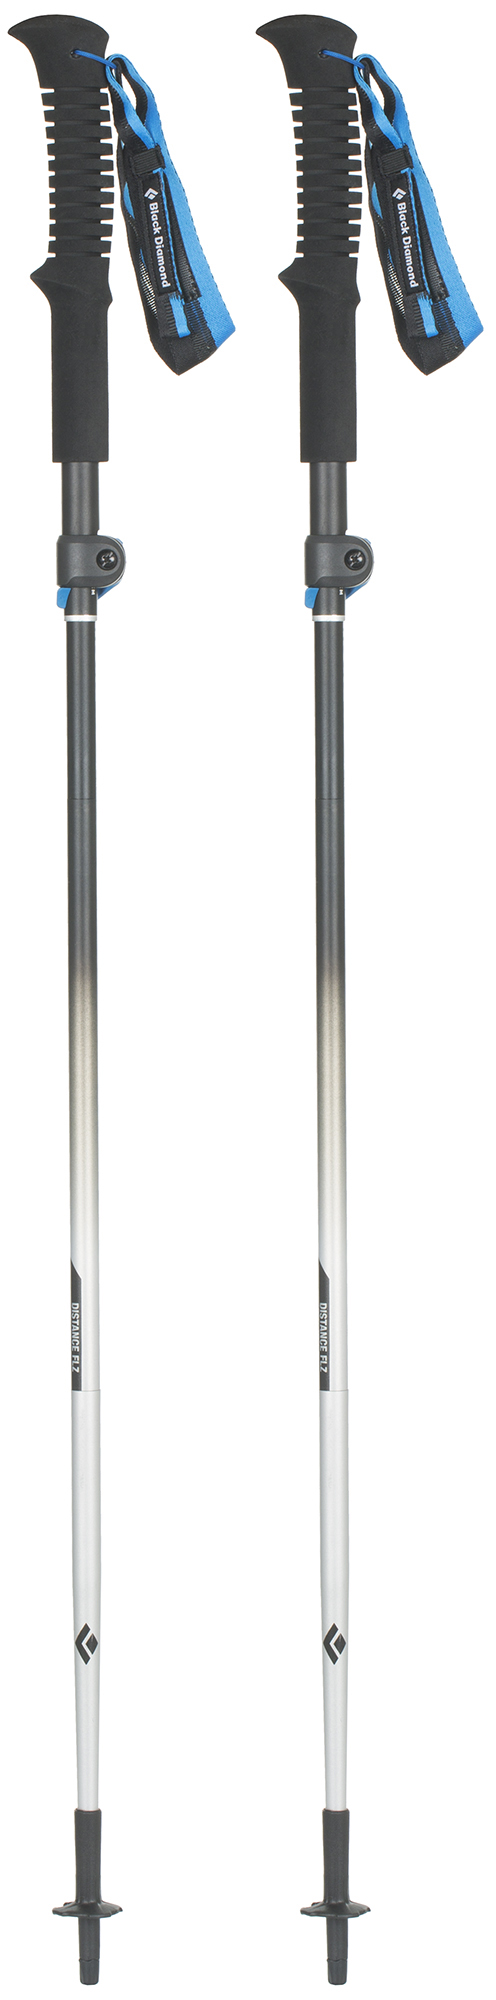 Black Diamond Палки телескопические Black Diamond Dist Flz Z-Poles diamond 230